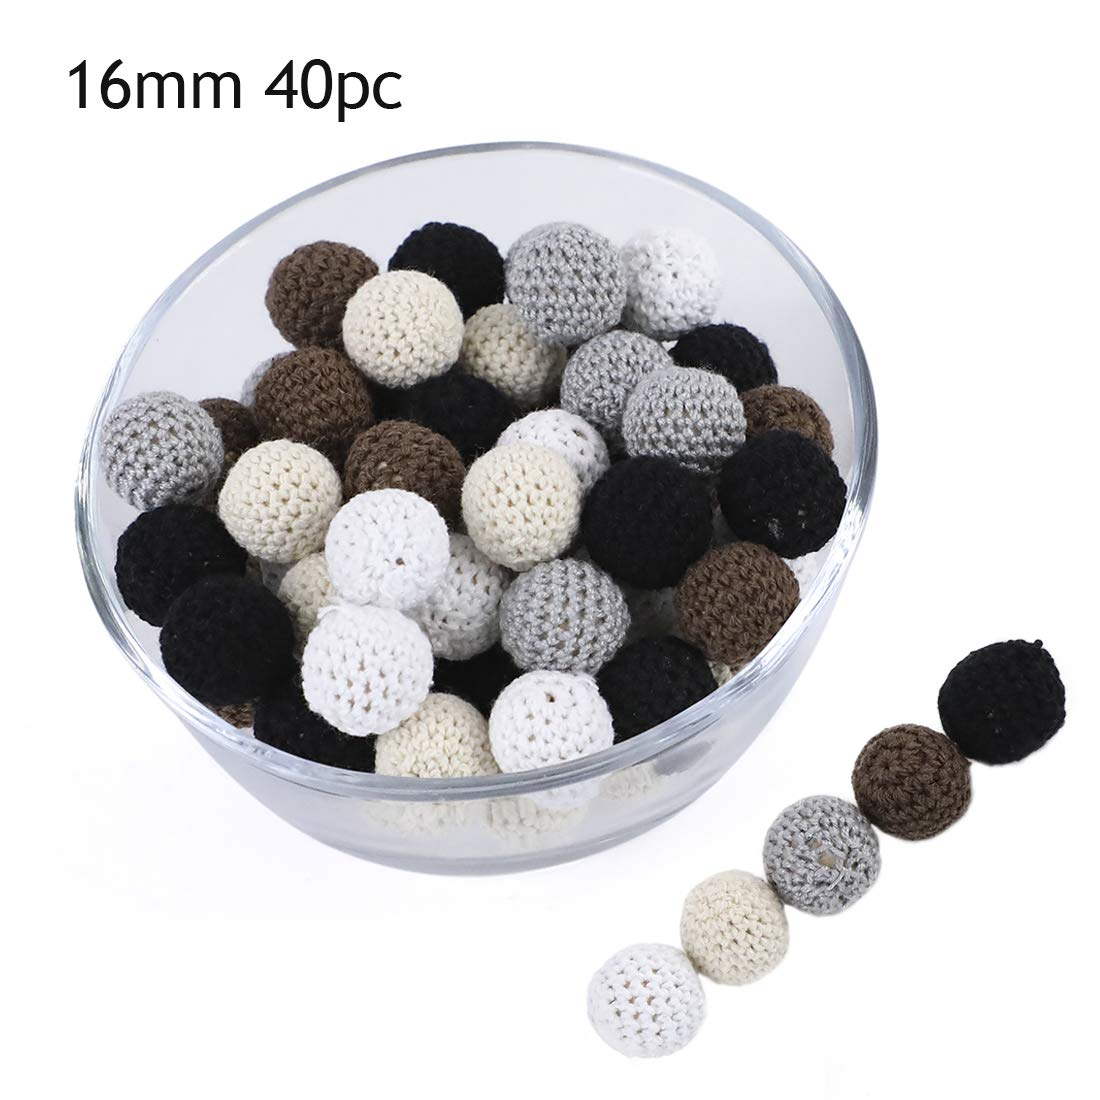 Promise Babe 16mm 40pc Wooden Crochet Beads Black Series Teething Loosing Beads Baby DIY Accessories for Making Necklace Bracelet Teether Toys